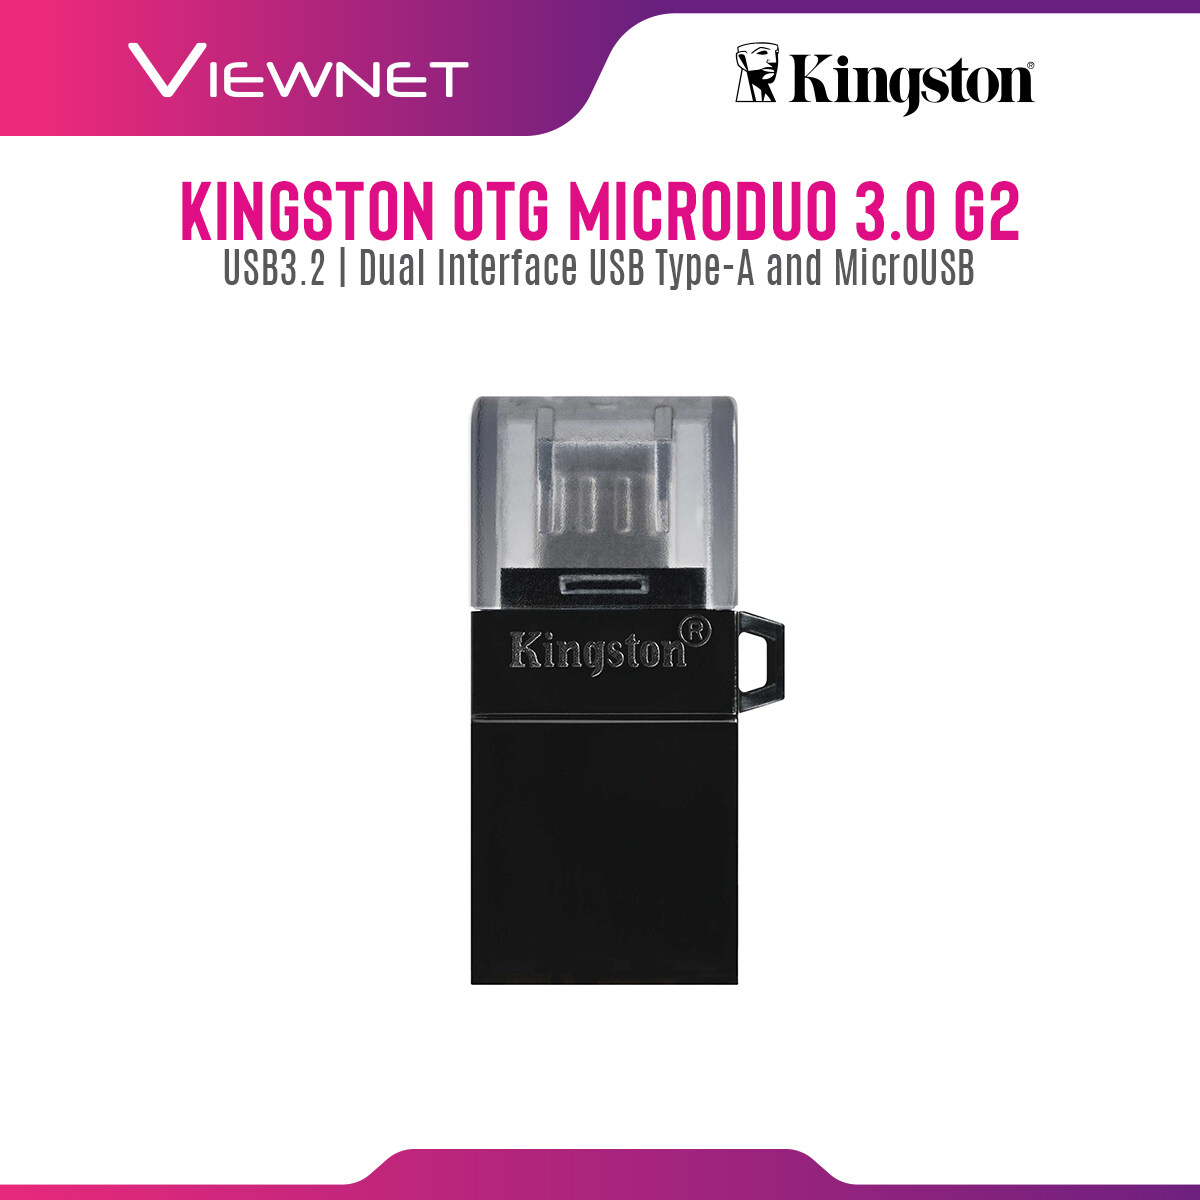 Kingston OTG DataTraveler microDuo 3.0 G2 with Dual Interface USB Type-A and Micro USB, Cap Protect, Strap Hole, Plug and Play (32GB / 64GB / 128GB)